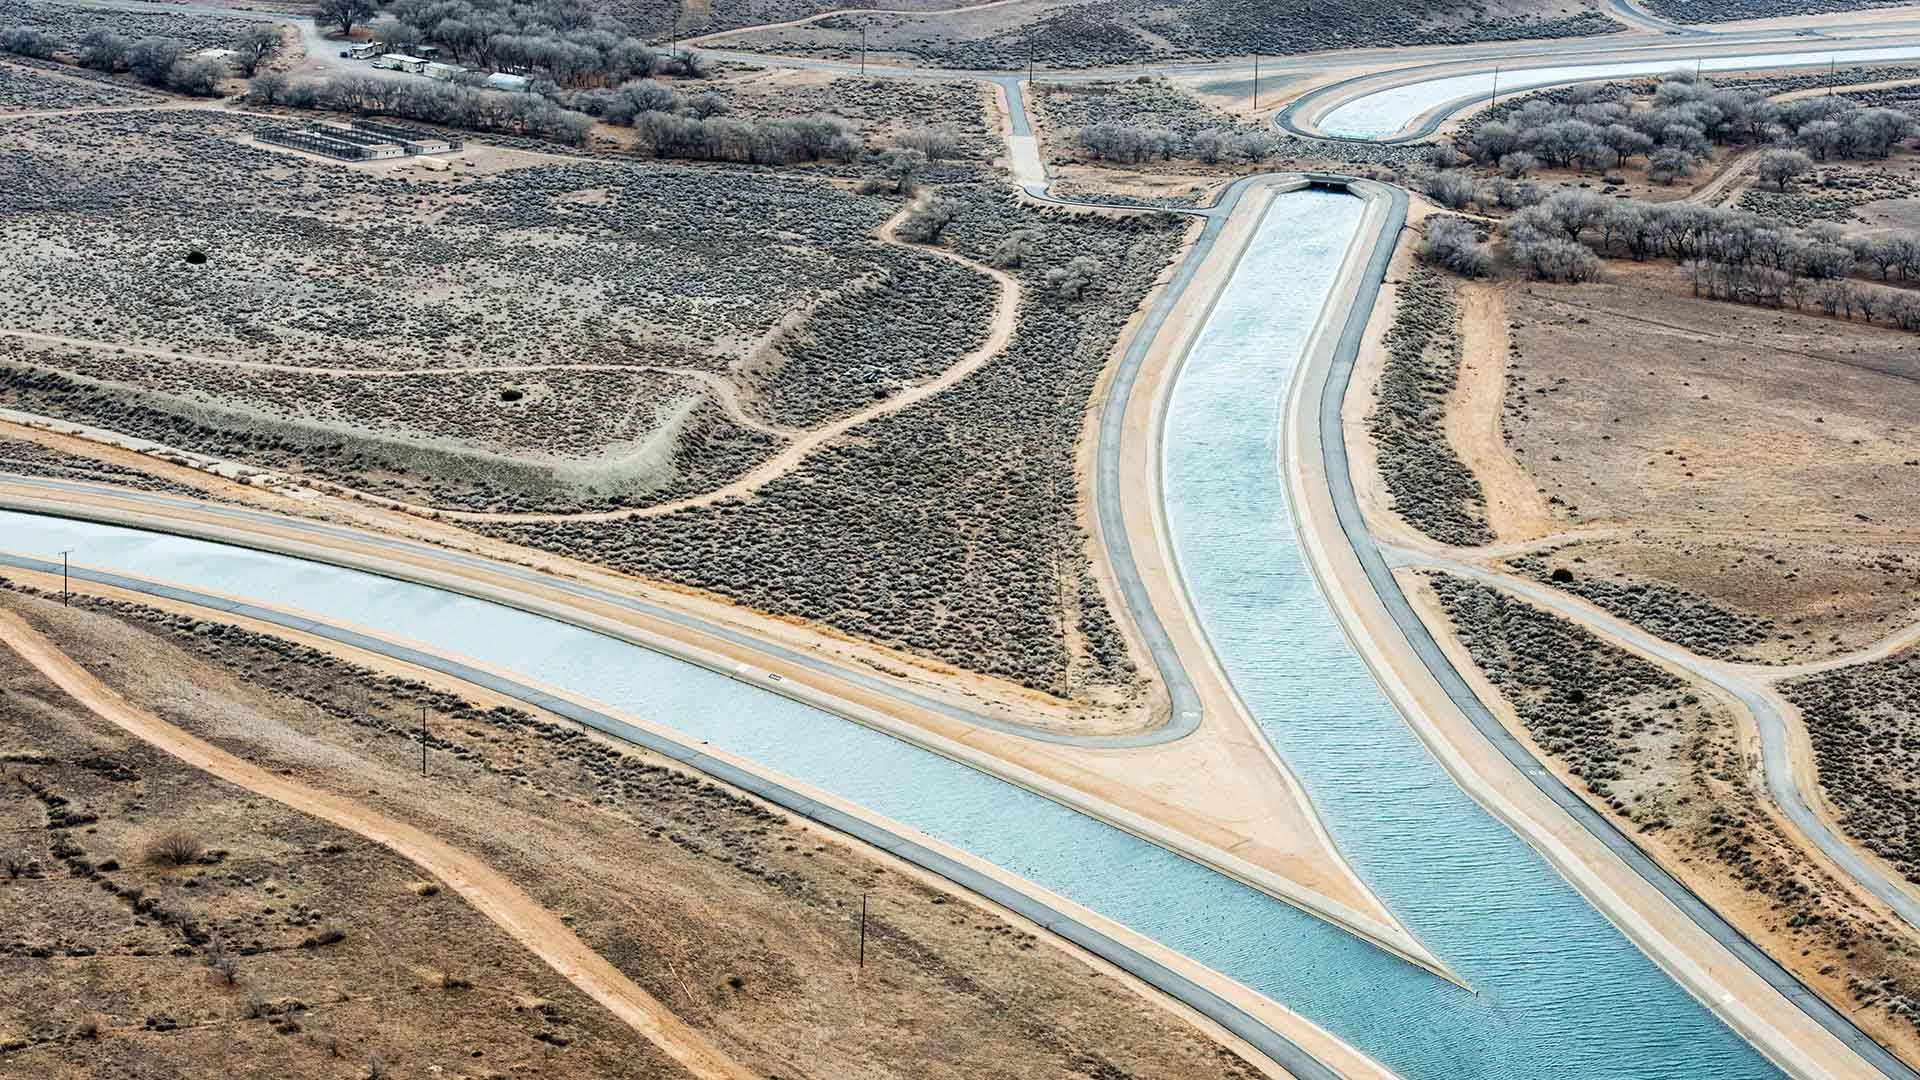 Under a presidential memo, federal biologists are under unprecedented time pressure to make key water decisions that control how much flows through the California Aqueduct. Florence Low / California Department of Water Resources